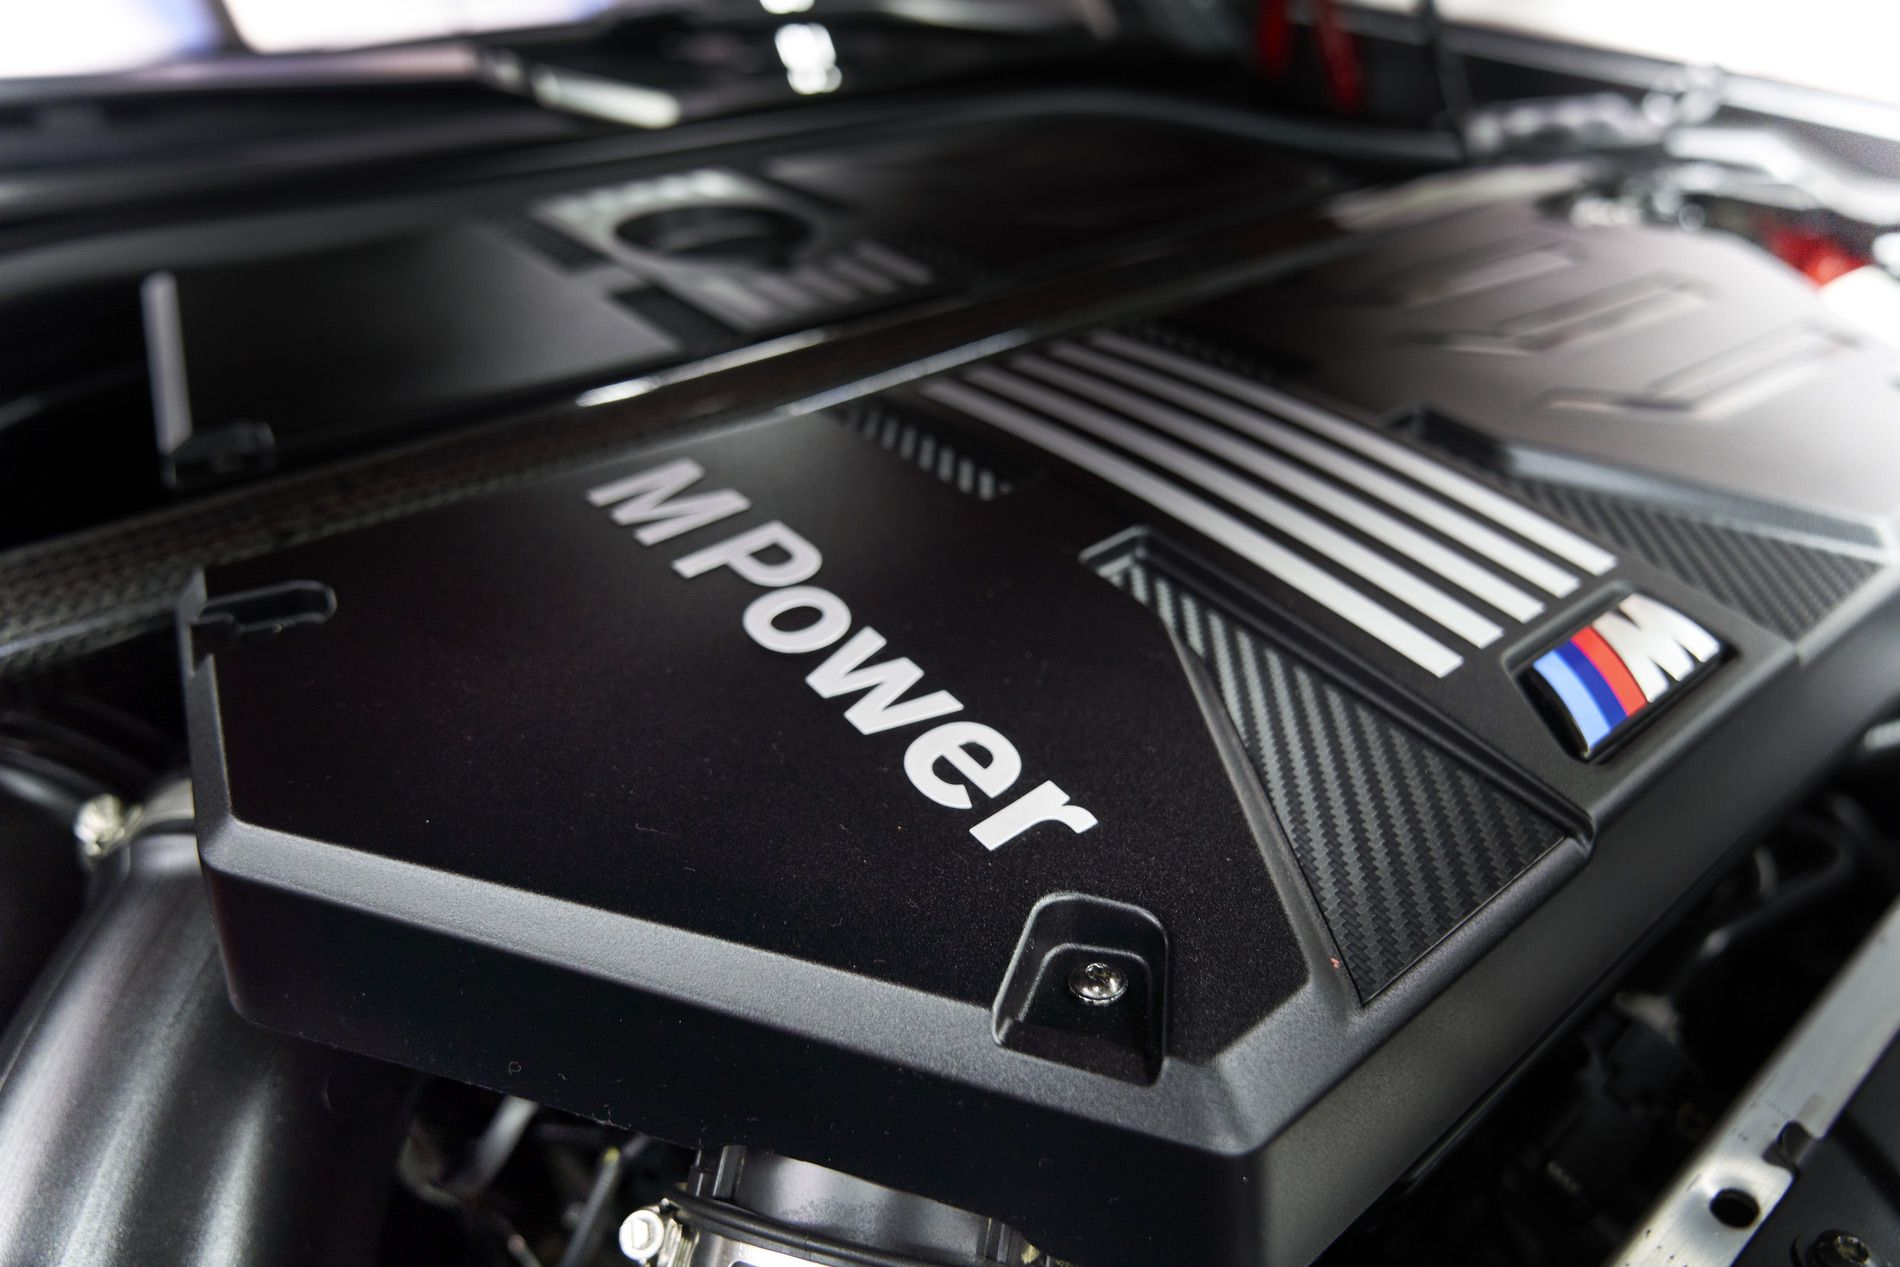 See the new BMW M engine - The S58!